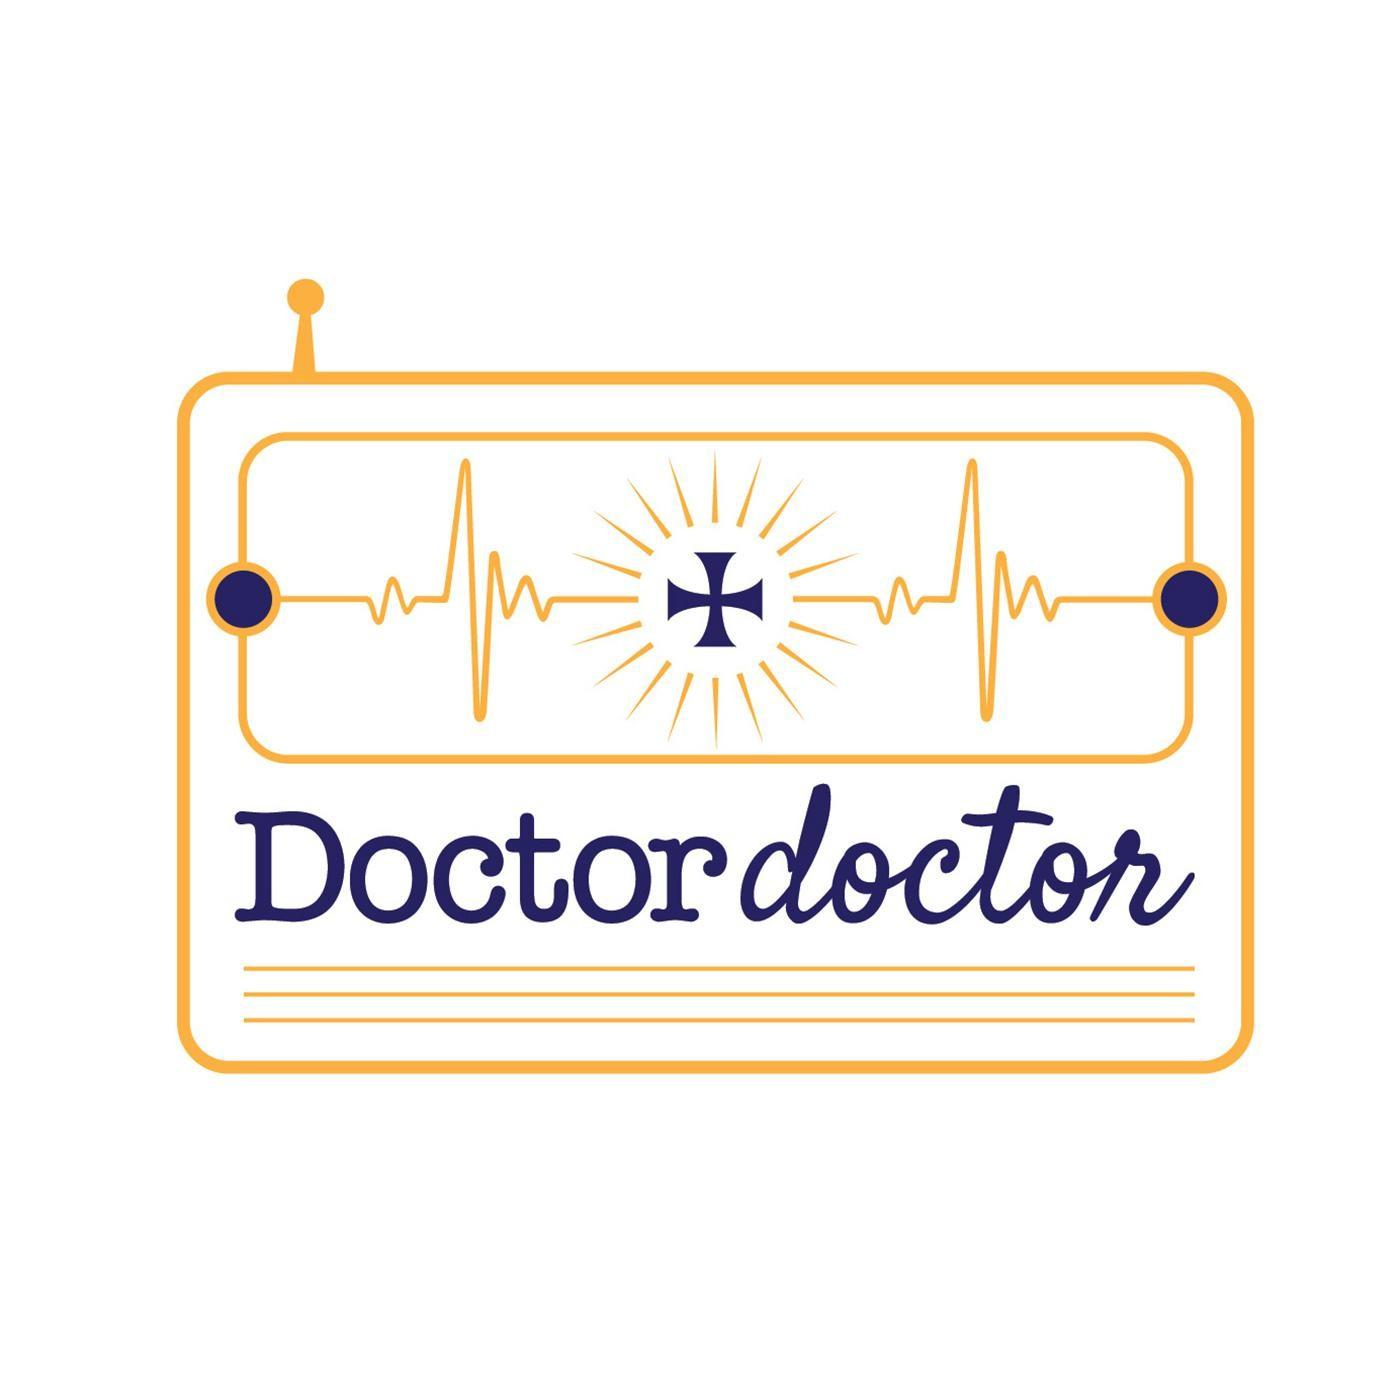 Doctor Doctor logo, psychology behind conspiracy theories